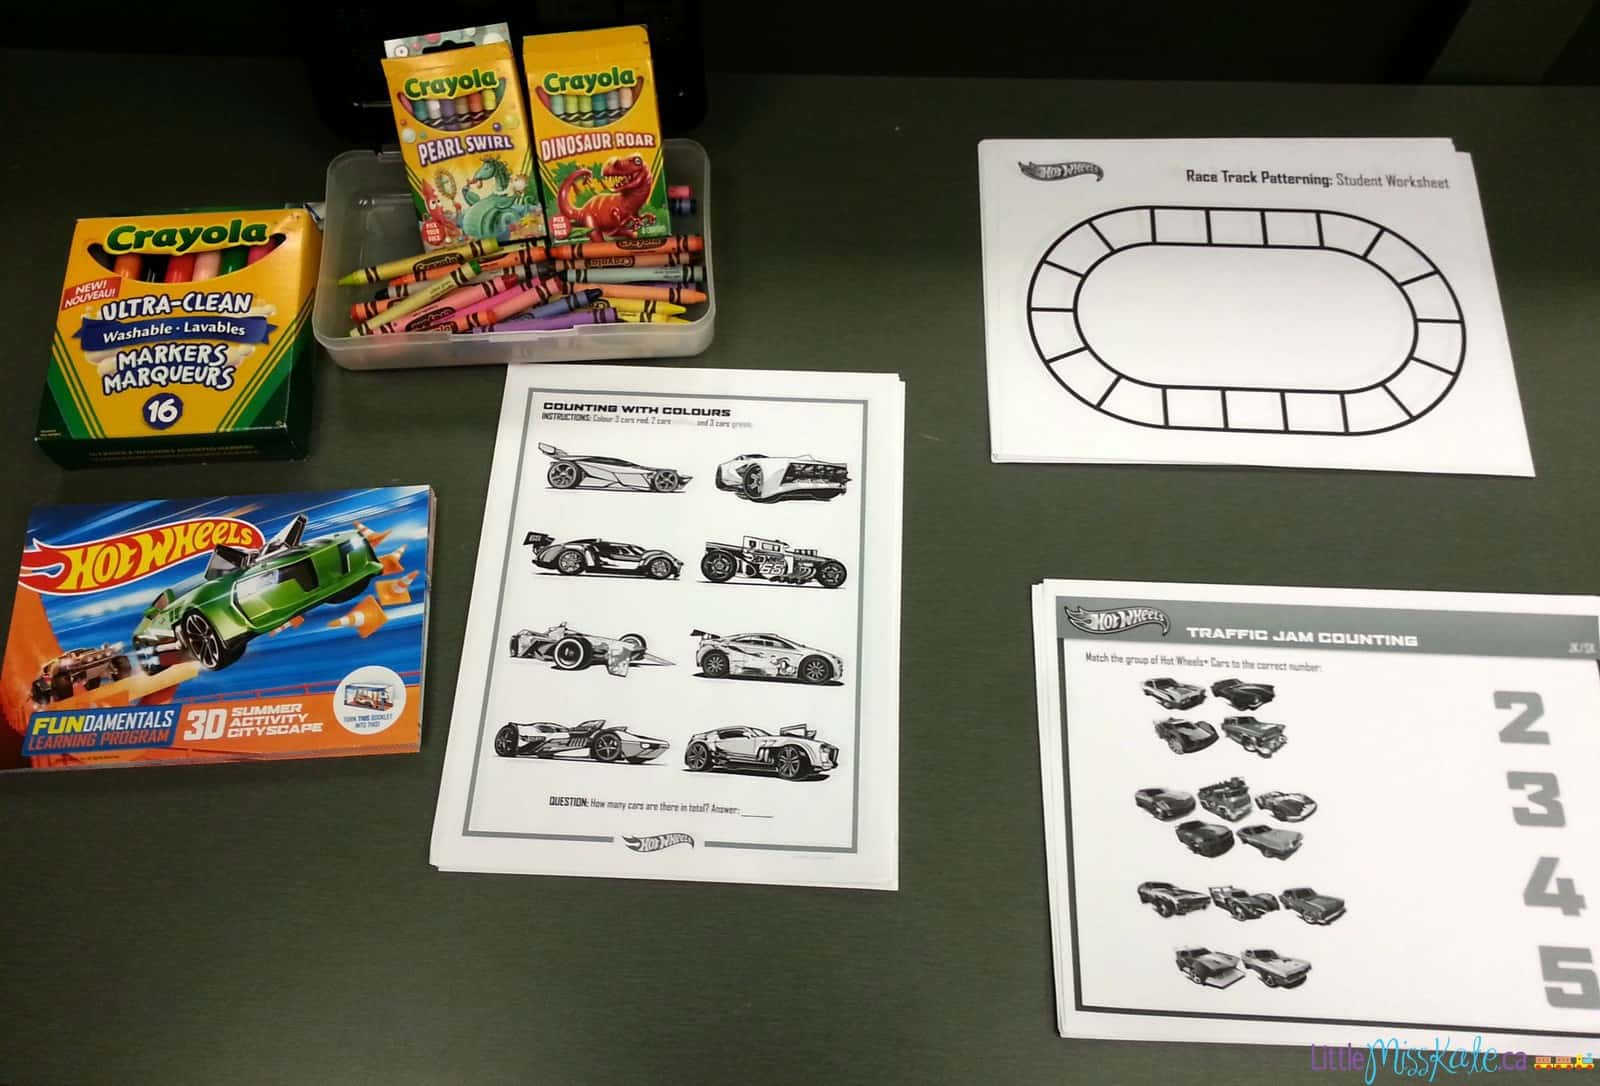 educational-games-with-hot-wheels-toy-cars-for-kids-03